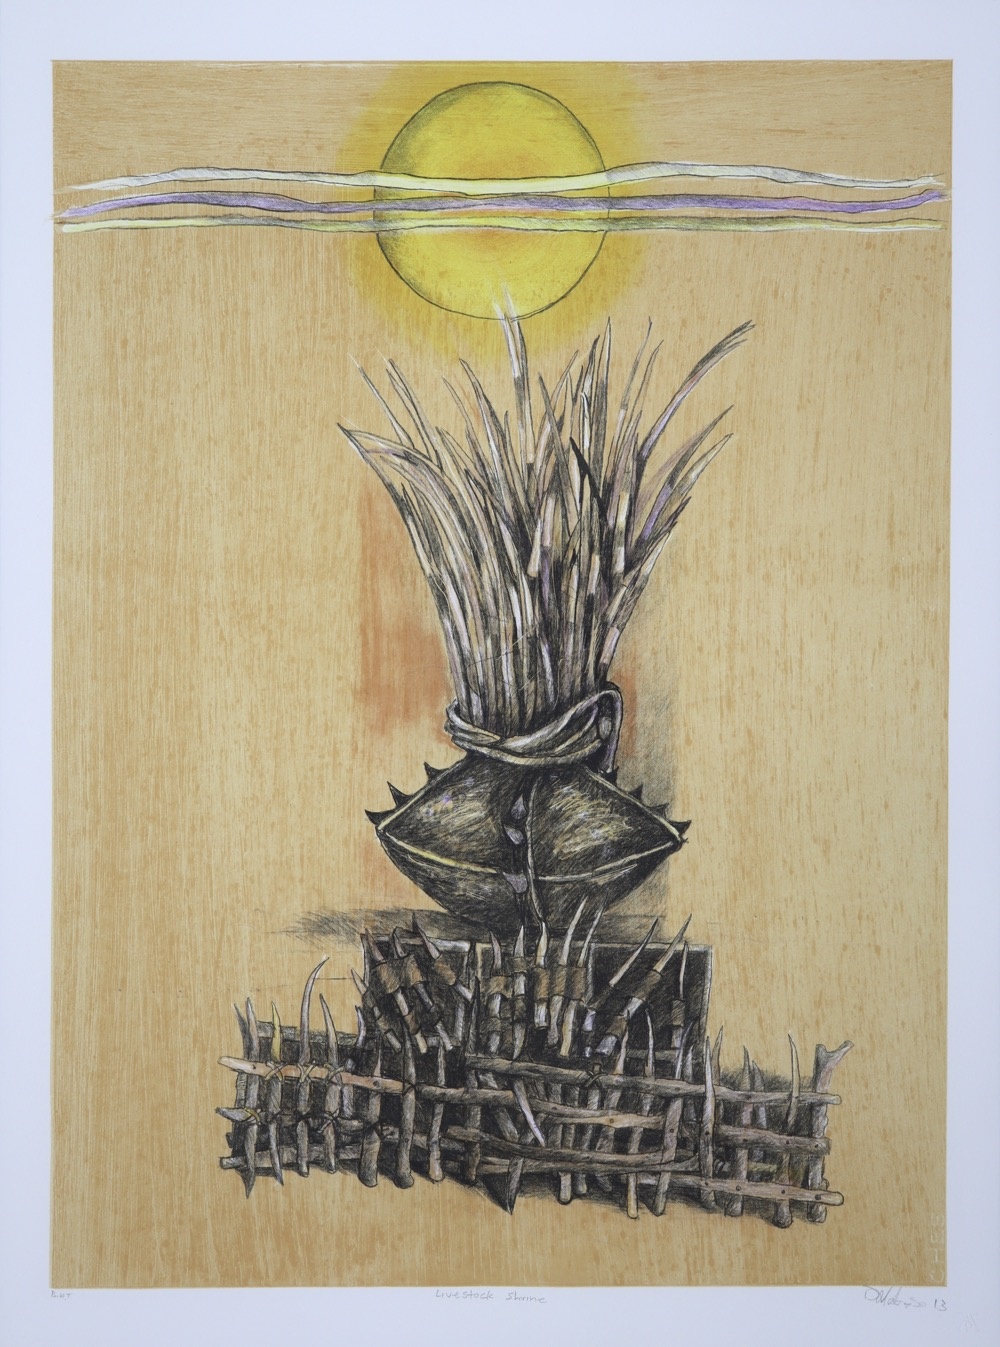 A barrier of spiky wooden posts with decorated clay vessel in middle of the frame with sun and clouds at the top.